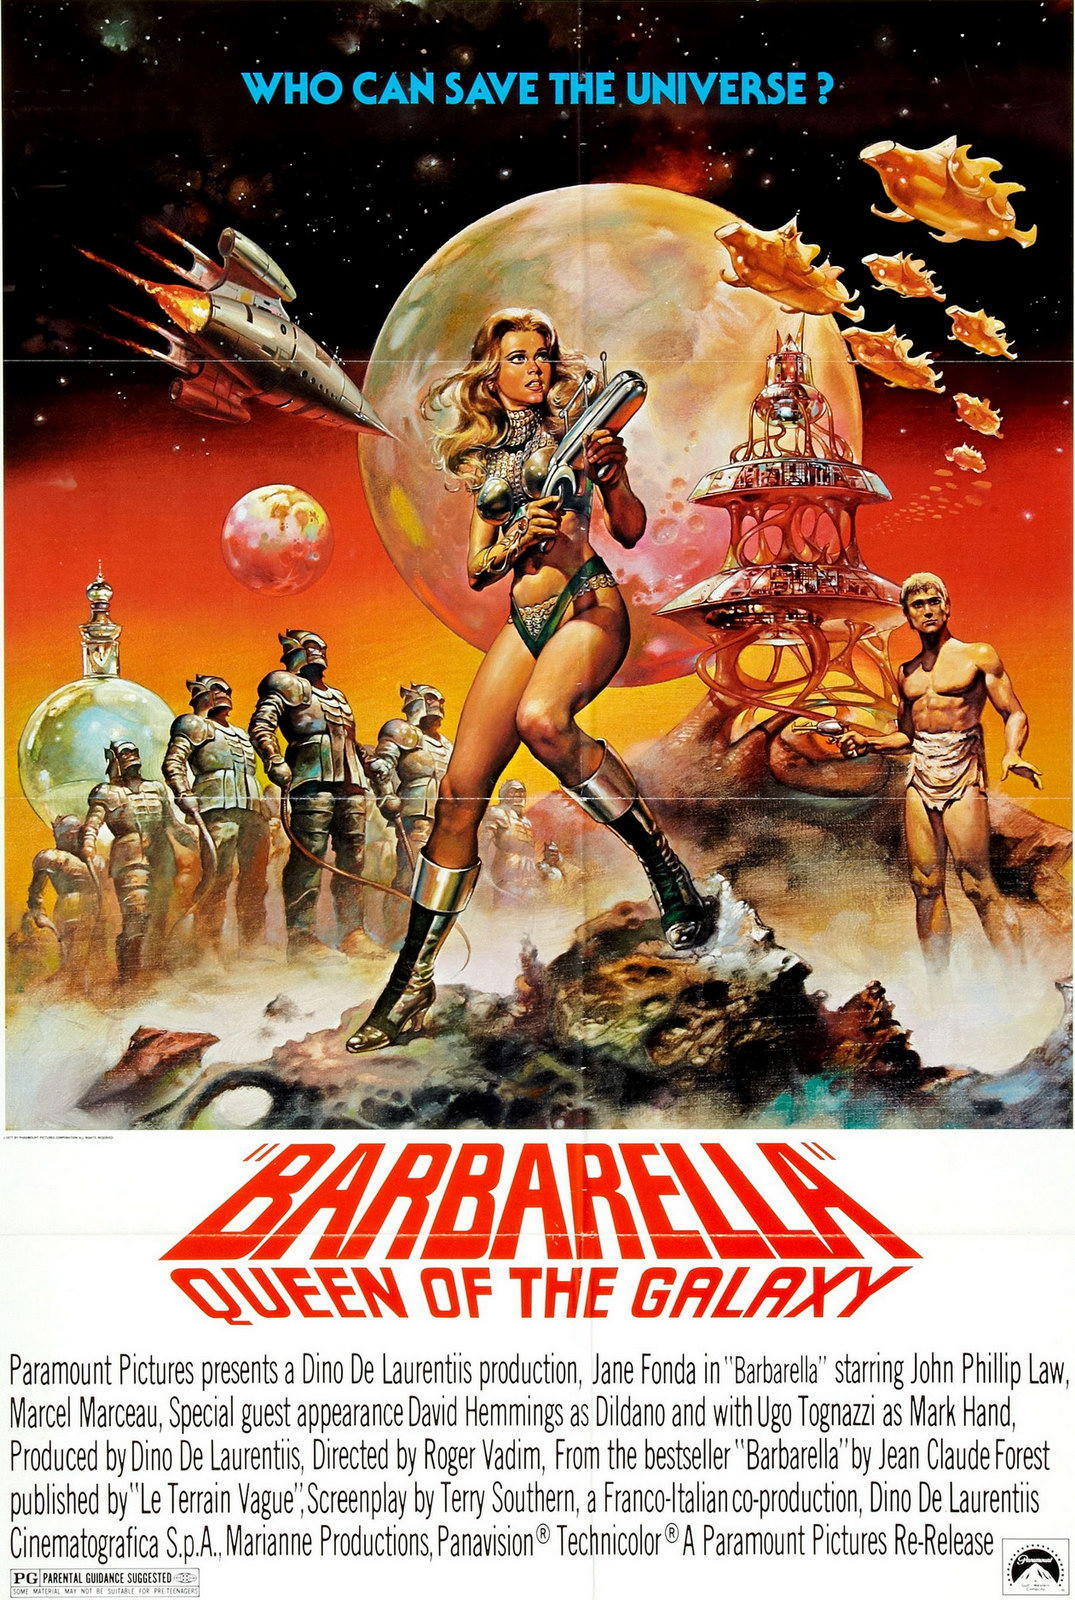 Barbarella movie posters vintage arts gallery for Buy art posters online